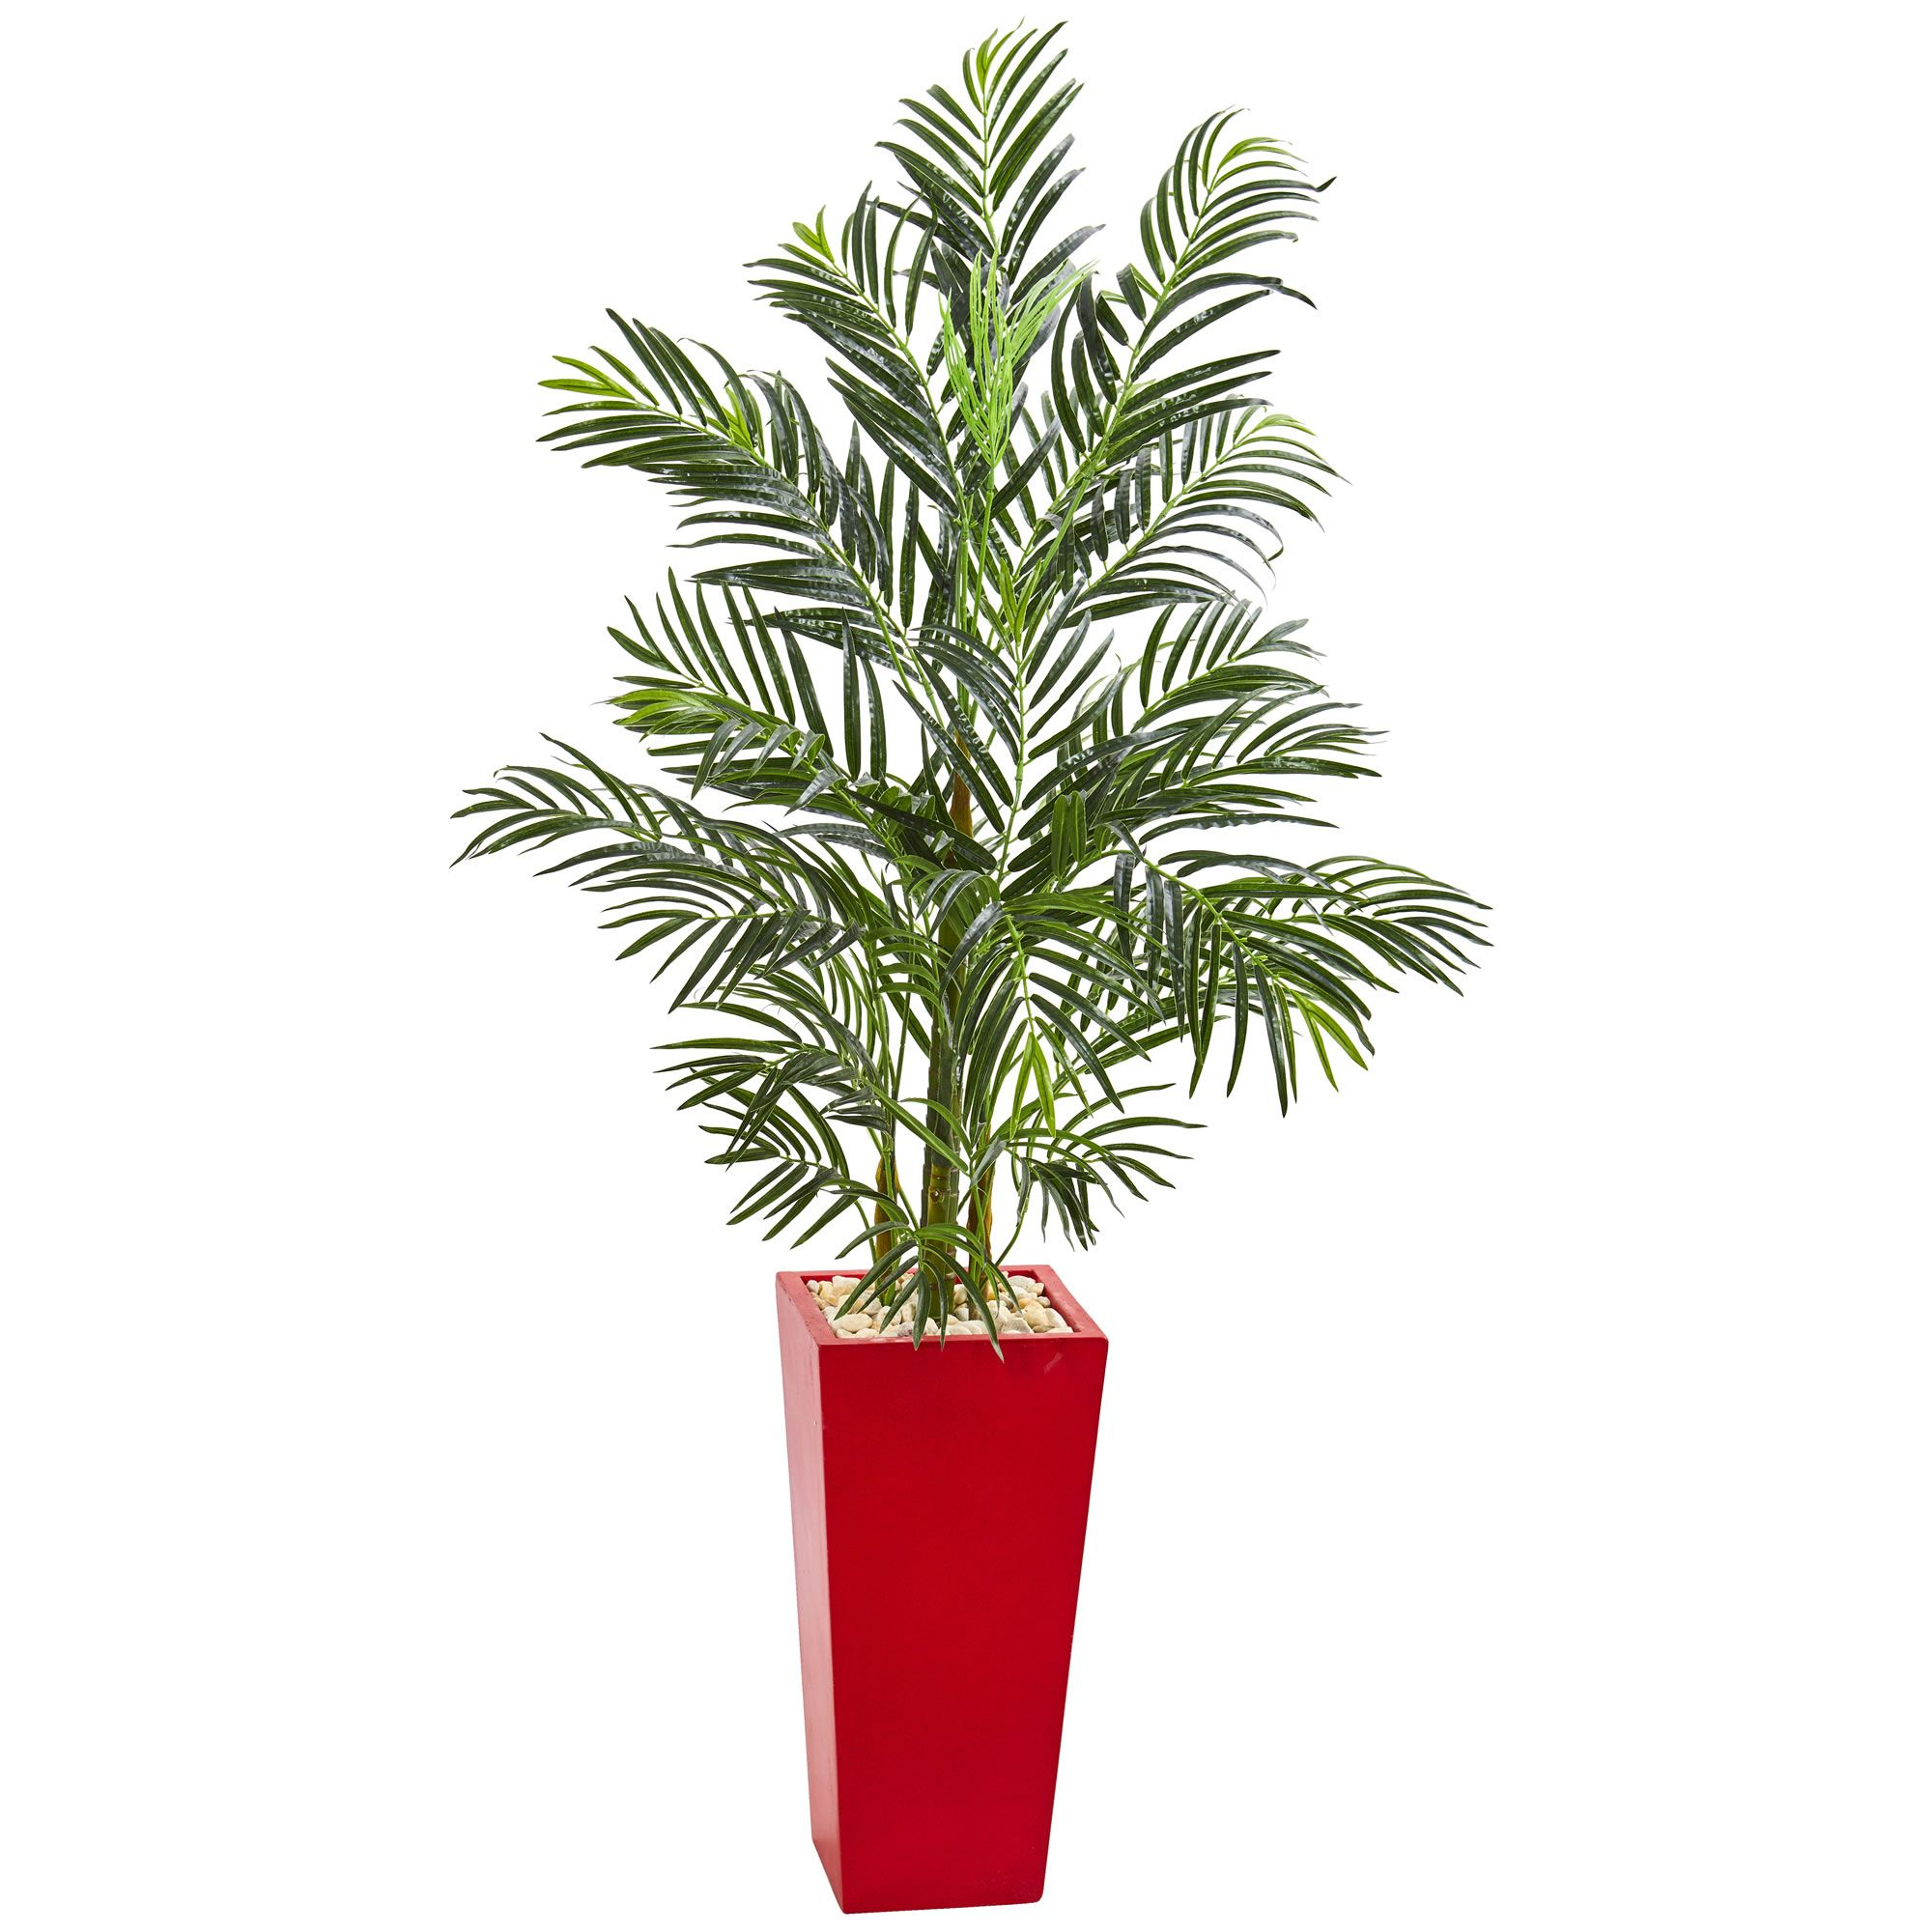 With Lush Green Foliage Realistically Fanning Out Of Three Shoots,